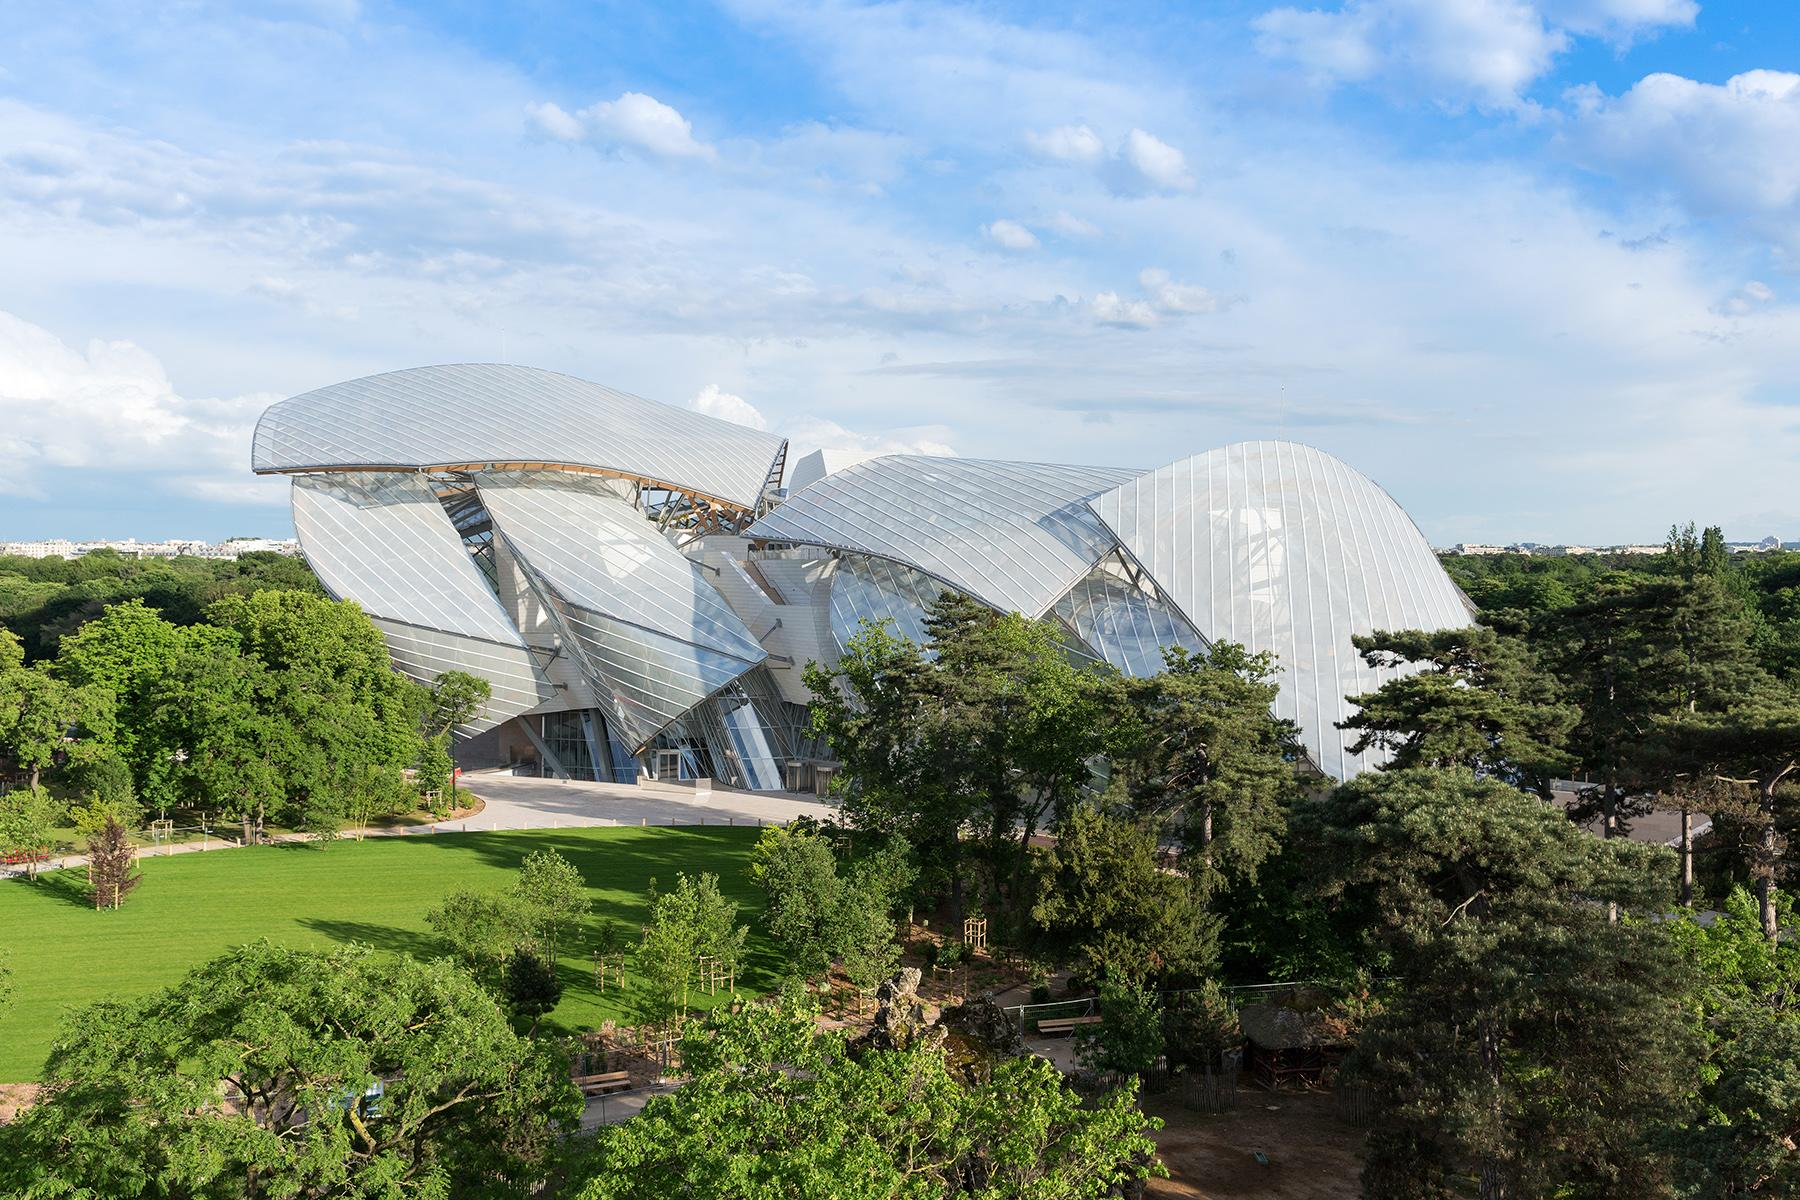 4 Fondation Louis Vuitton Paris the 25 ultimate things to do in paris The 25 Ultimate Things to Do in Paris 4 Fondation Louis Vuitton Paris